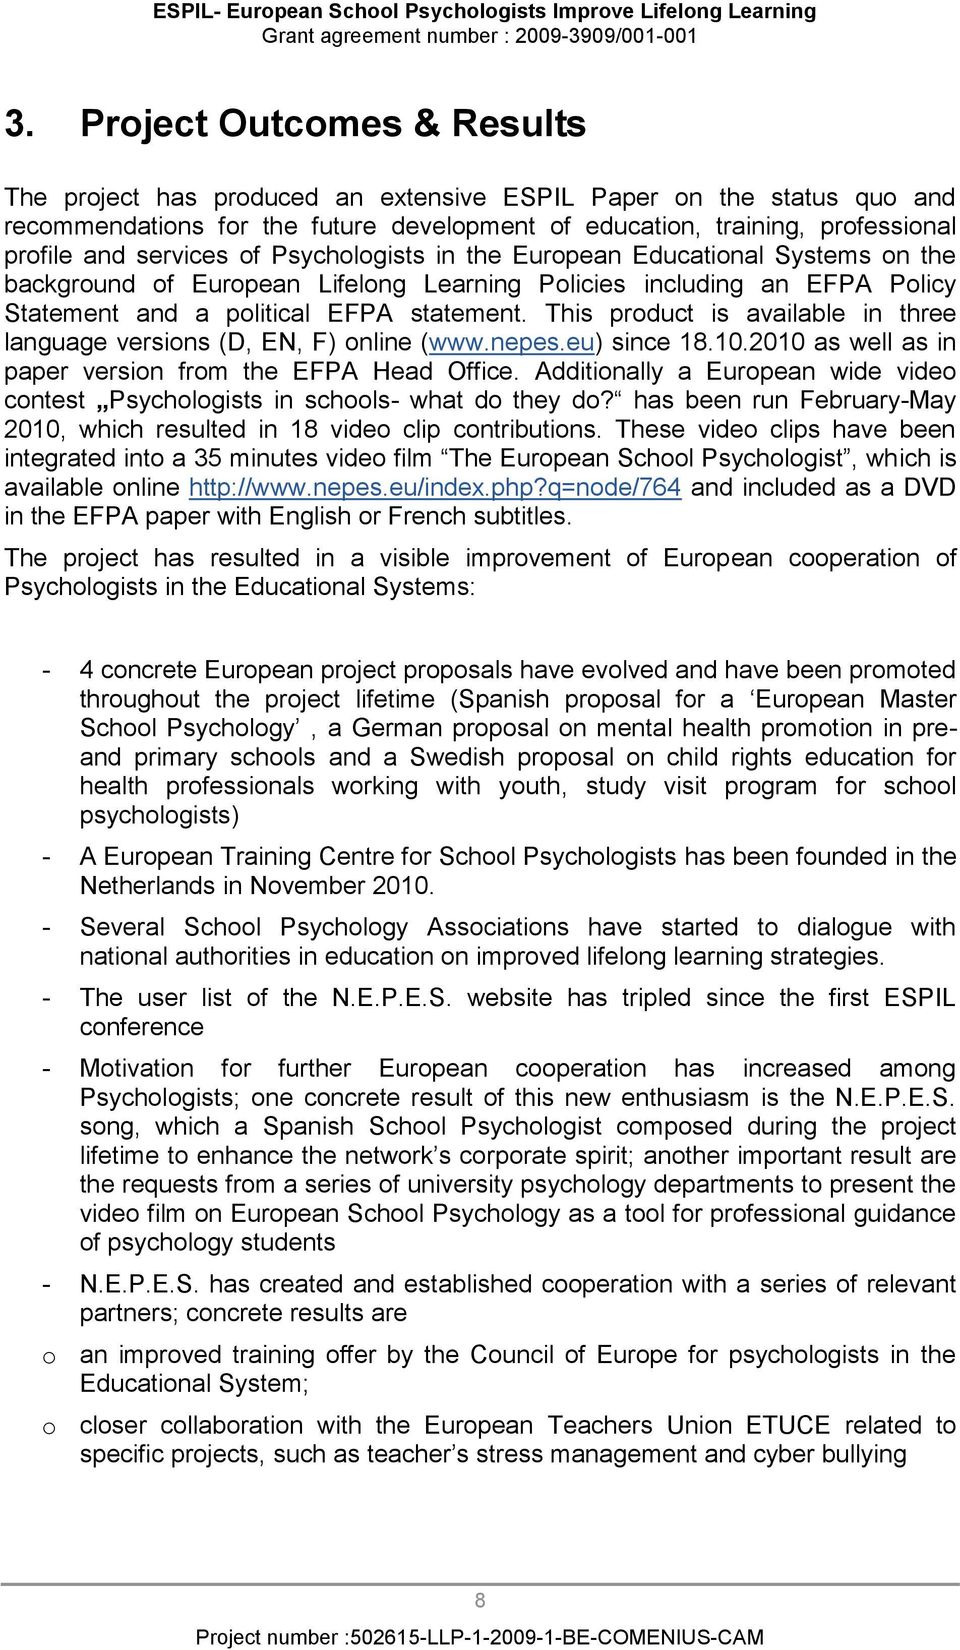 This product is available in three language versions (D, EN, F) online (www.nepes.eu) since 18.10.2010 as well as in paper version from the EFPA Head Office.